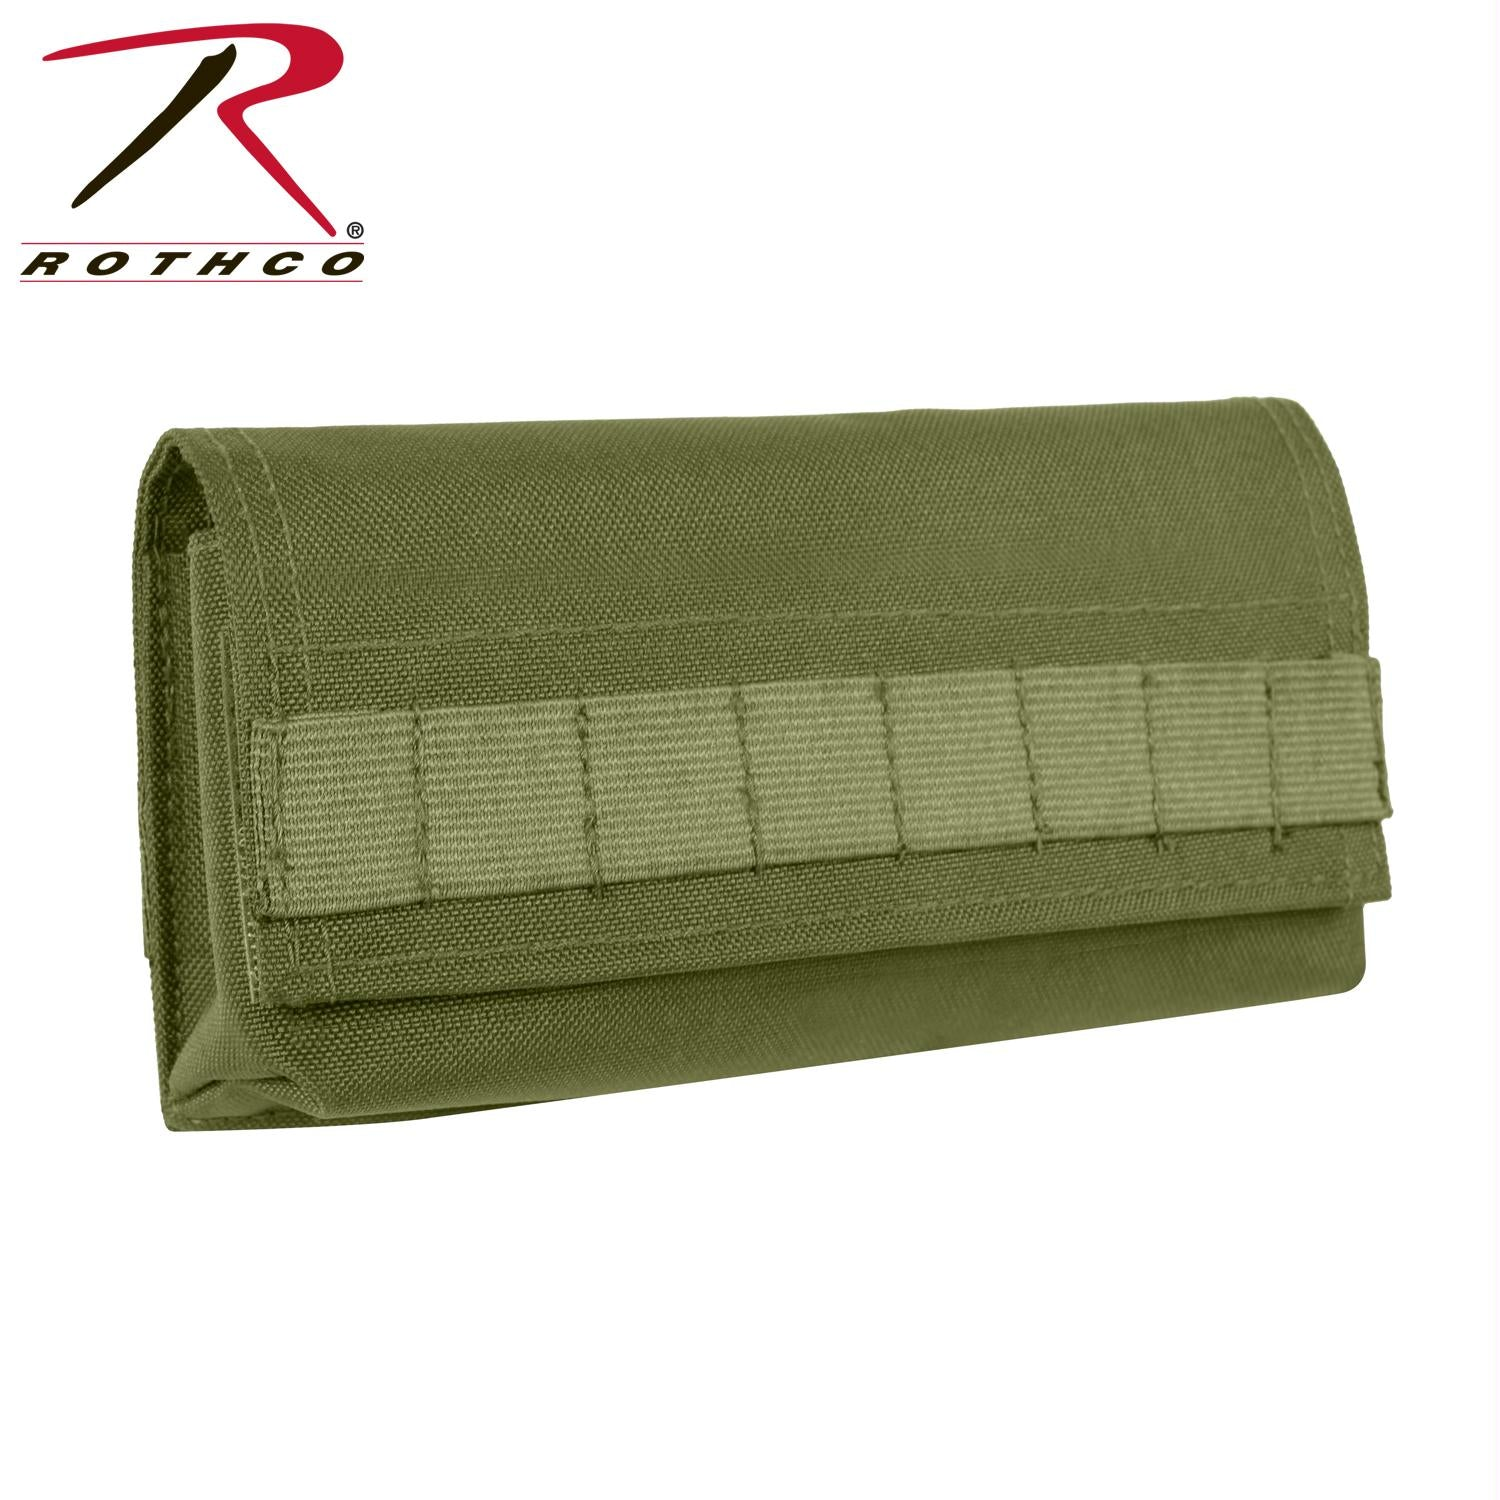 Rothco 18 Round Shotgun/Airsoft Ammo Pouch - Olive Drab